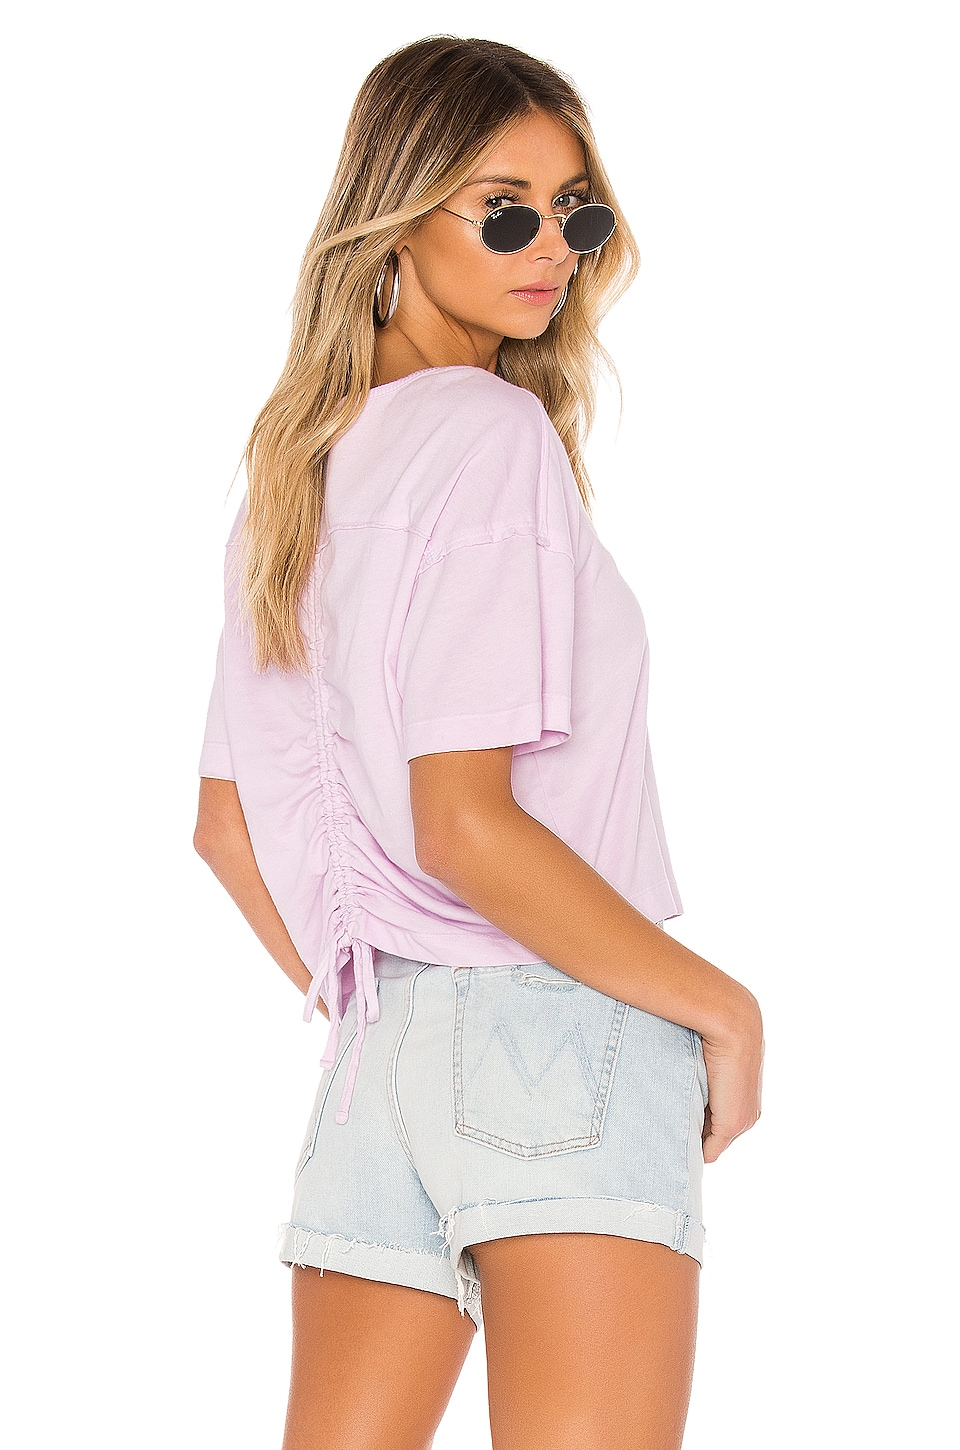 Splendid Casing Detailed Tee in Antique Lilac